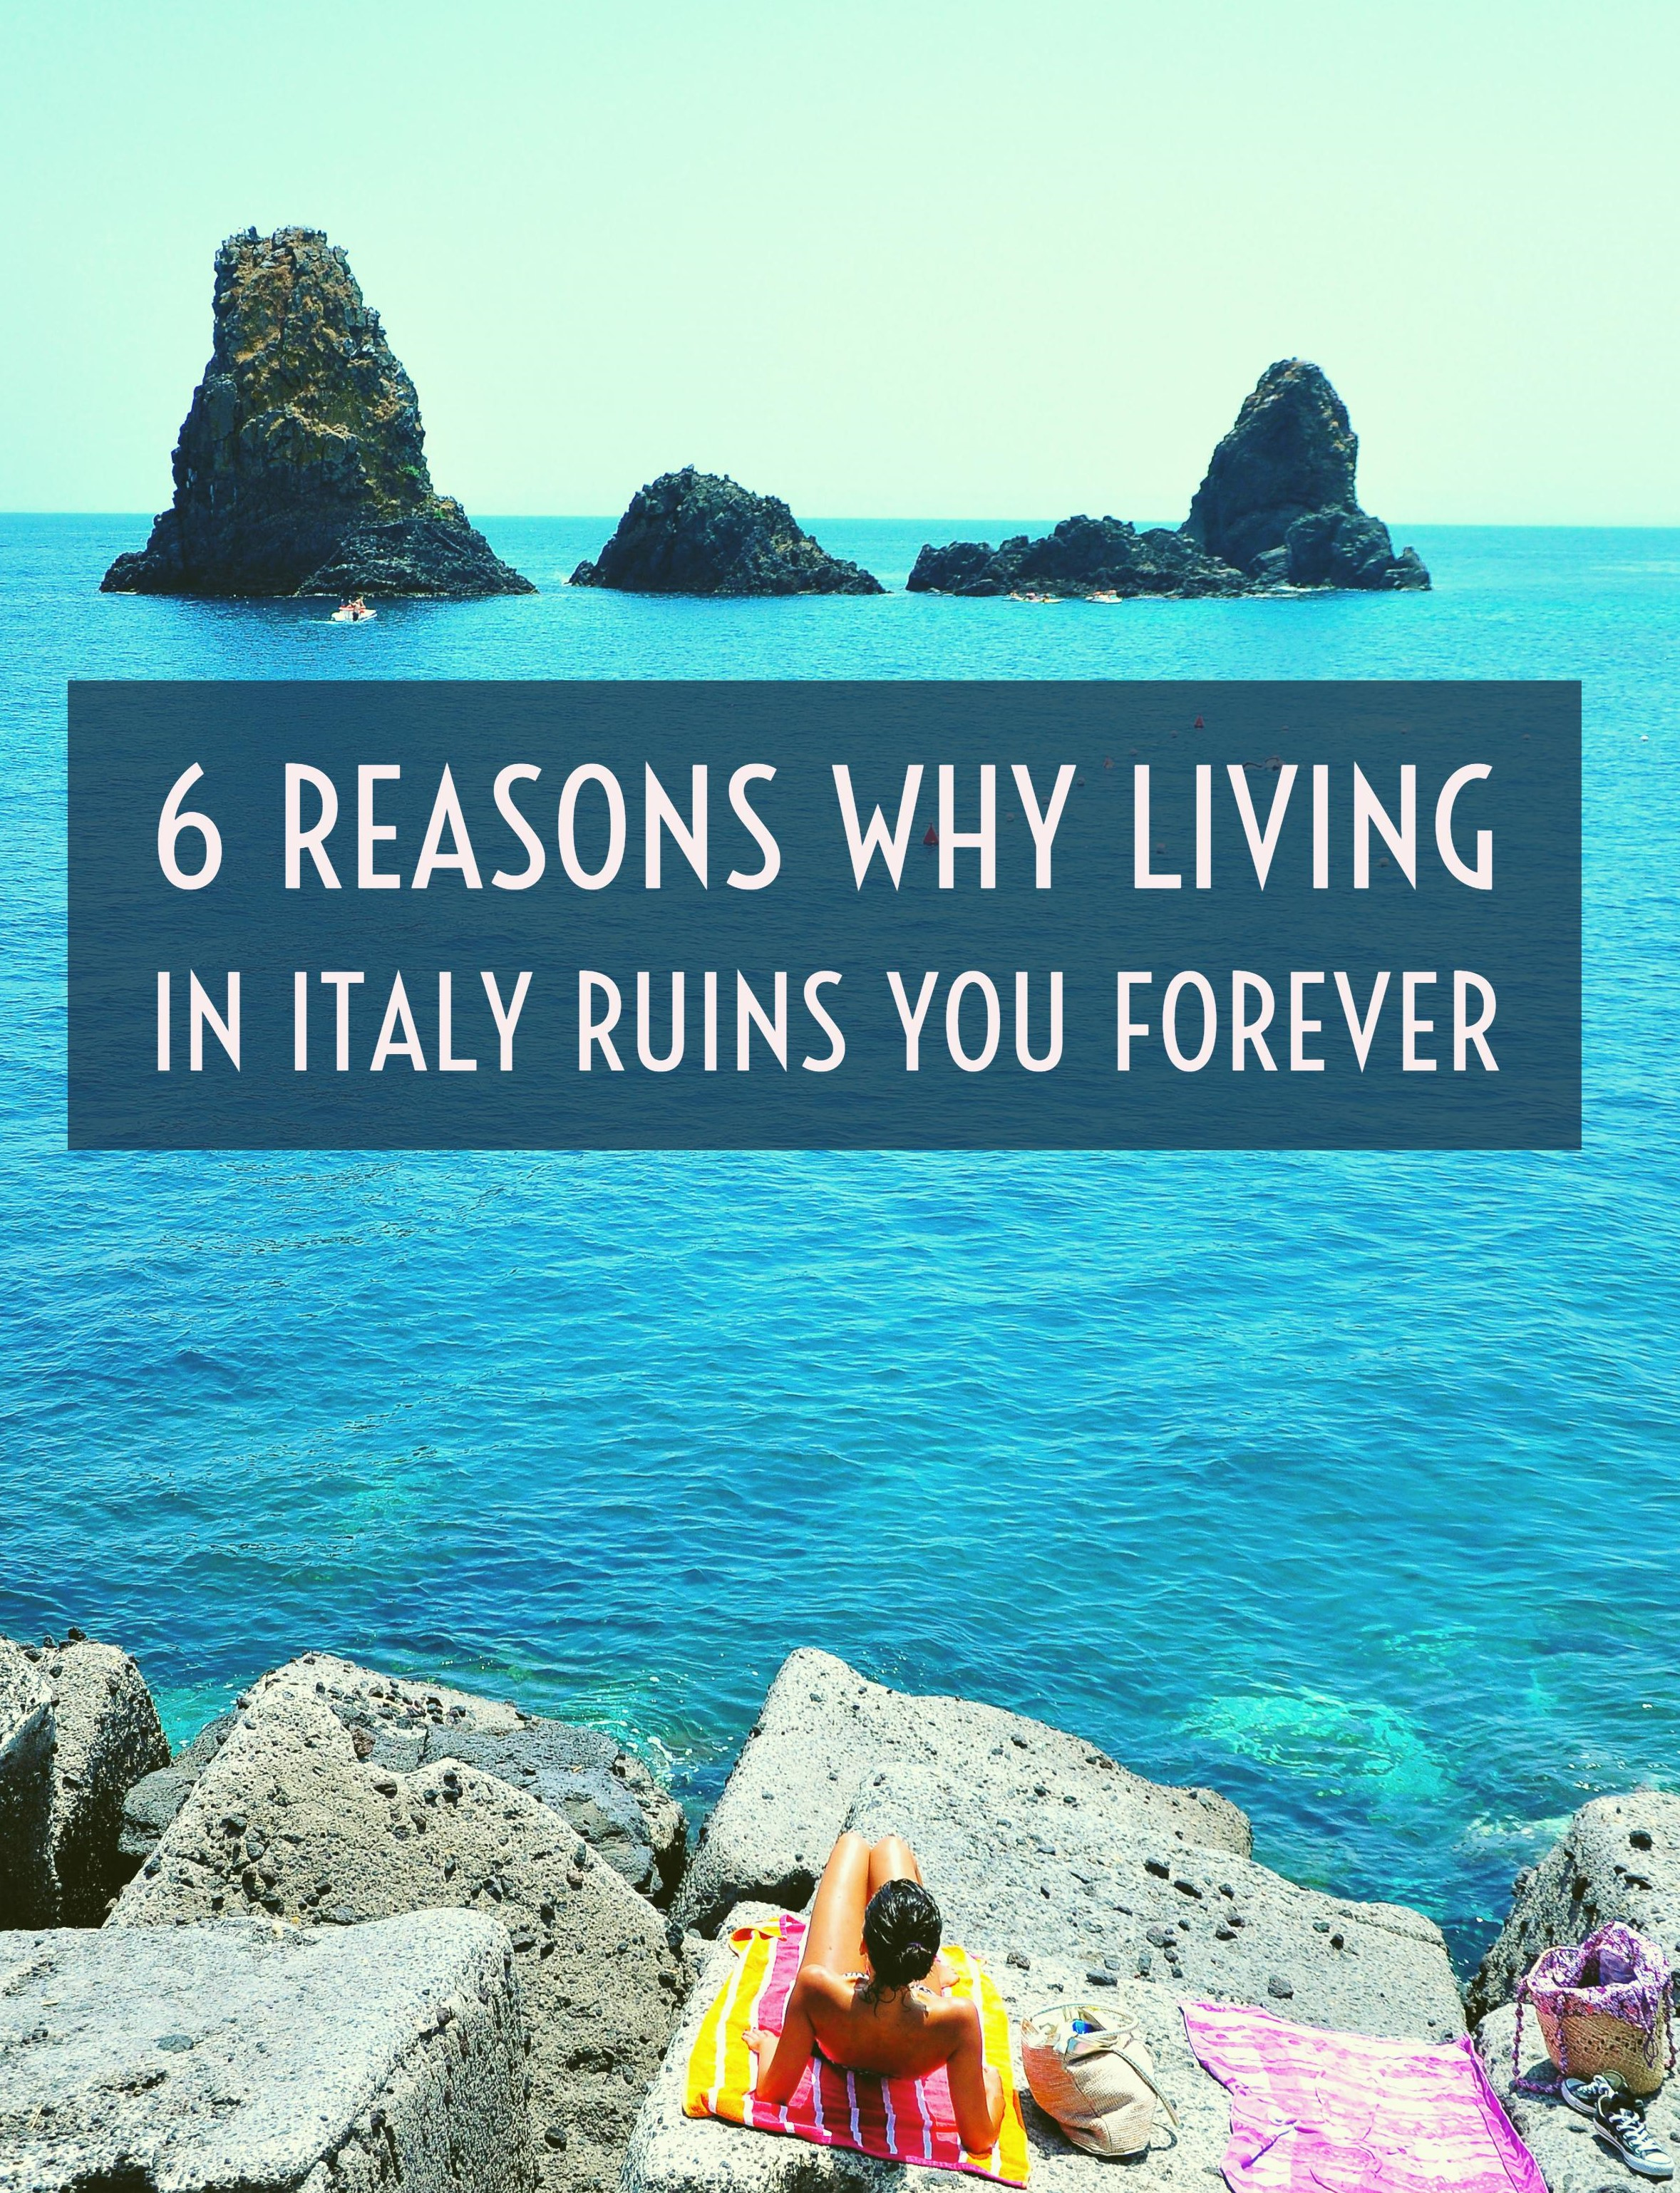 Reasons Why Living in Italy Will Ruin You Forever